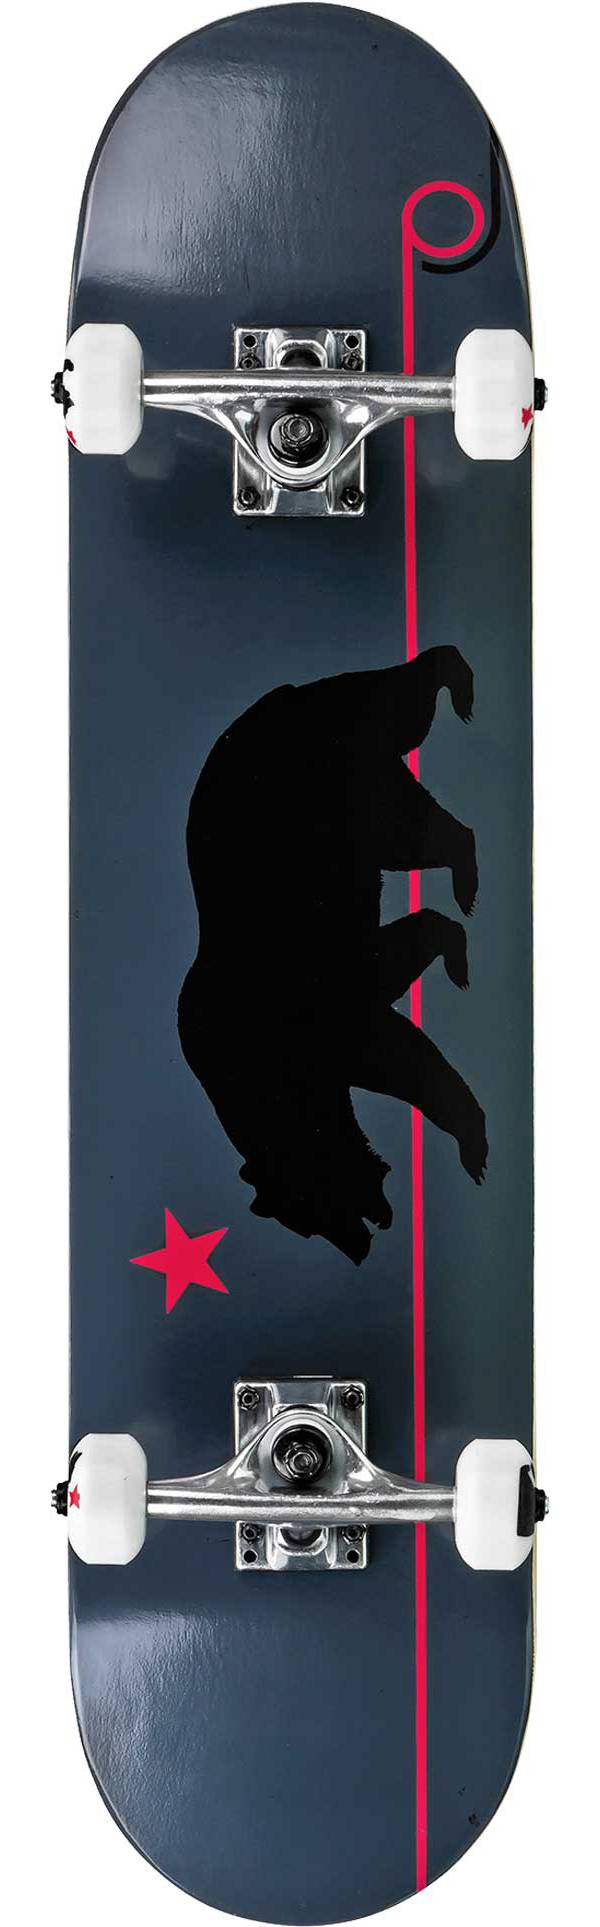 Roller Derby Deluxe Series Skateboard product image